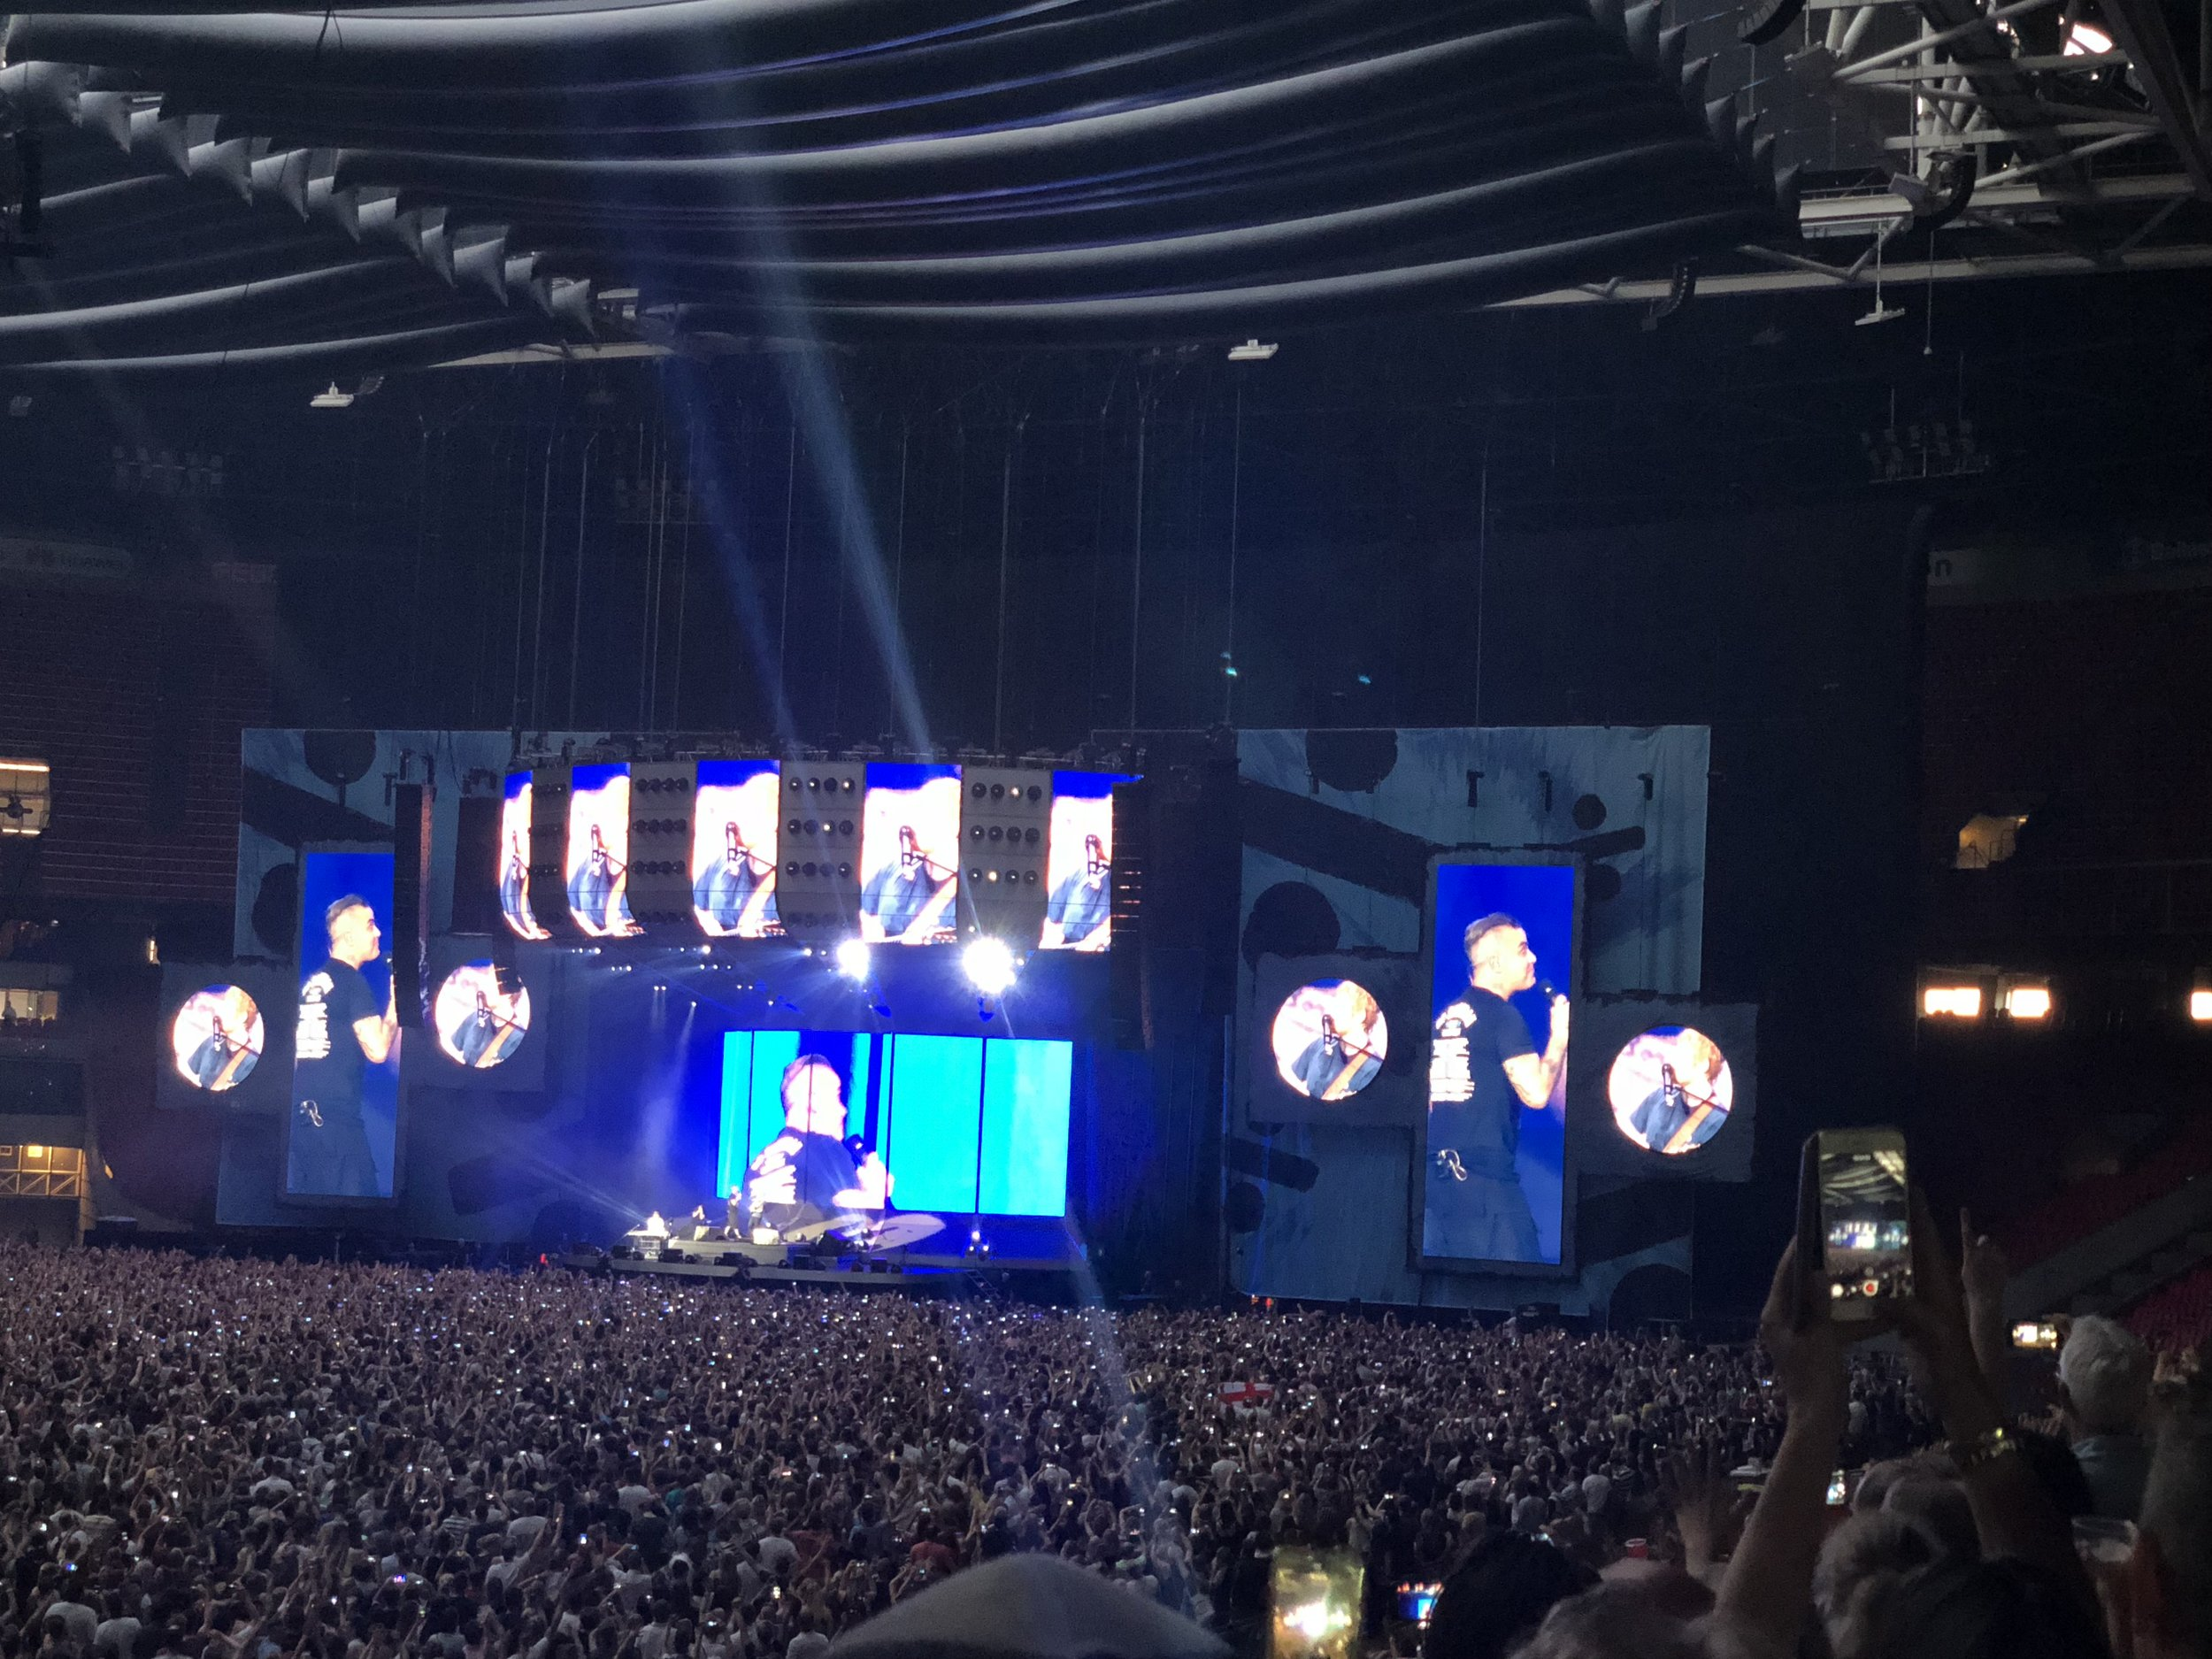 Robbie Williams joining Ed Sheeran, Amsterdam